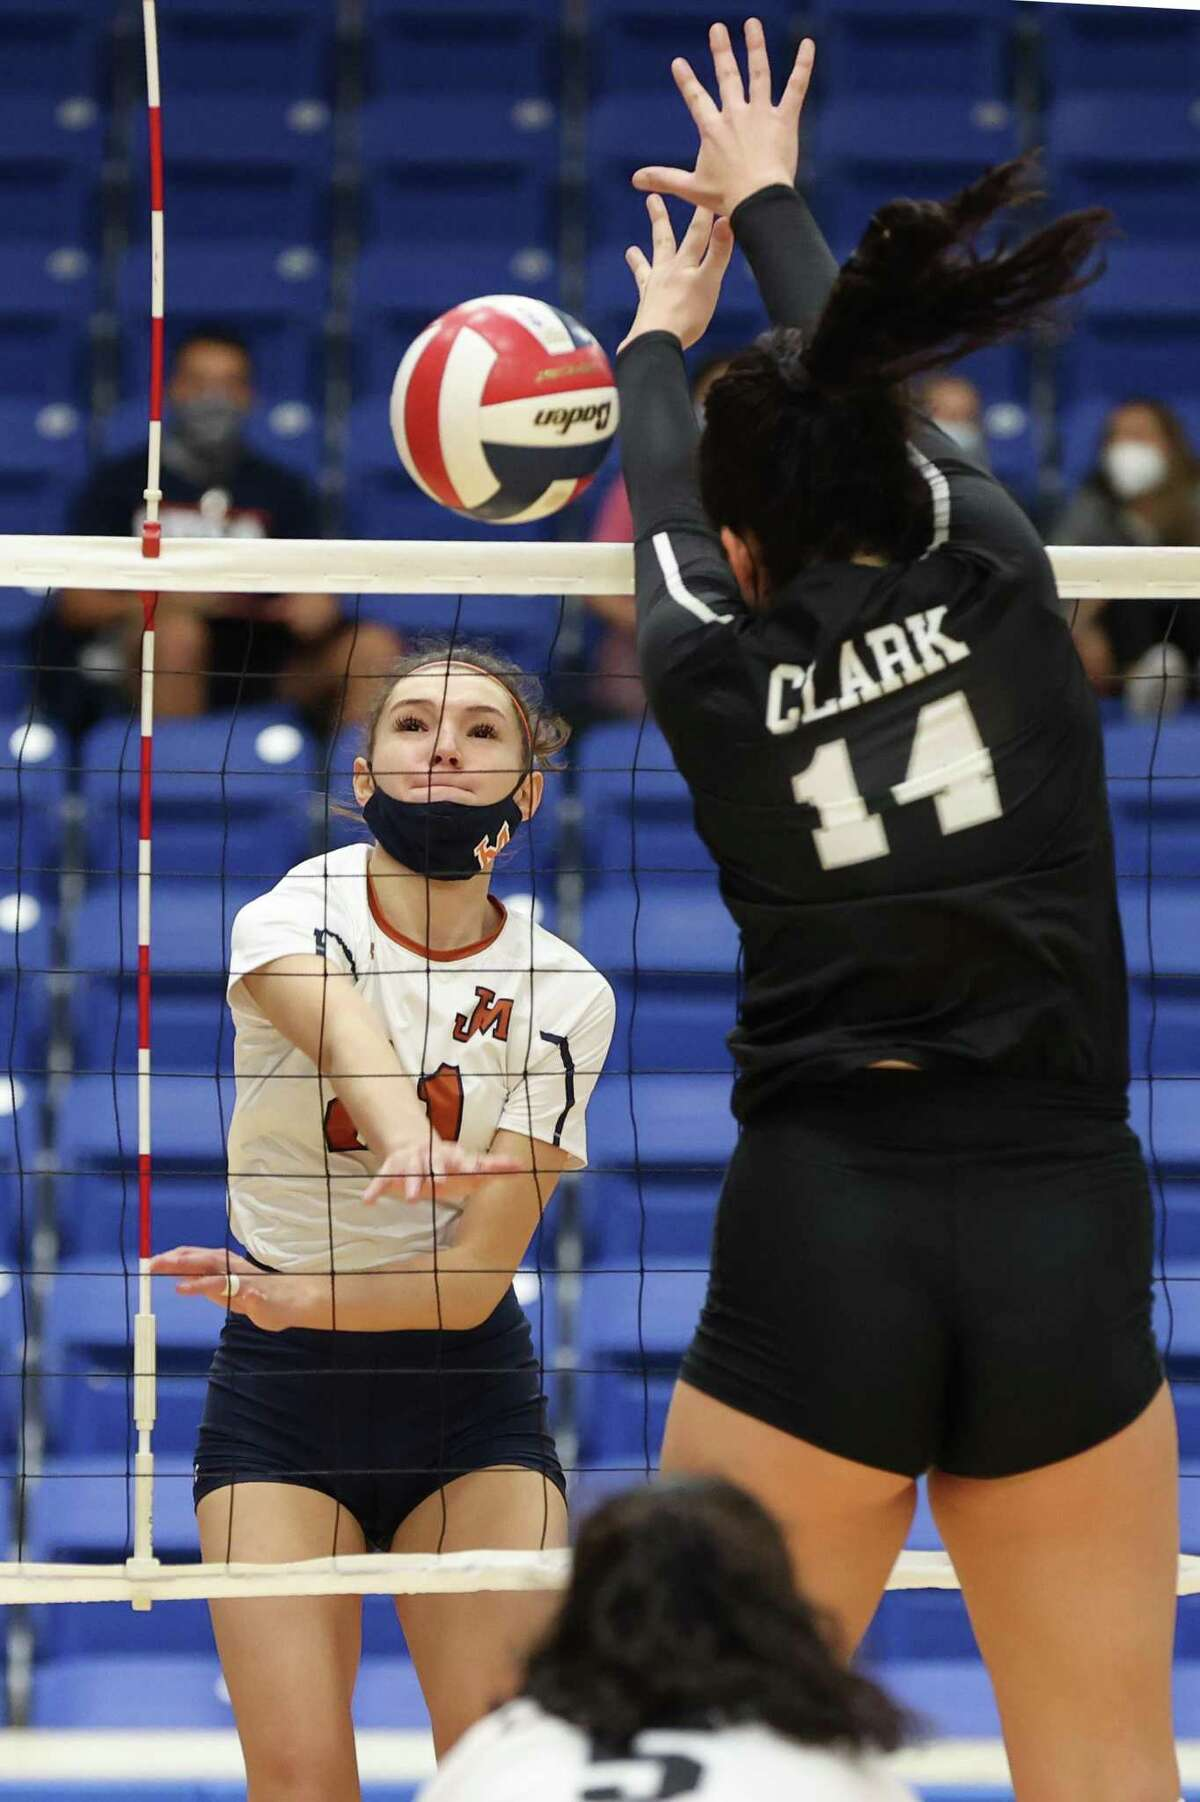 Madison's Mia Dorsey, left, hits the ball past Clark's Elise McGhee during their District 28-6A volleyball match at Northside Gym on Tuesday, Nov. 10, 2020. Clark won the match in four sets: 25-23, 25-21, 20-25, 25-22.